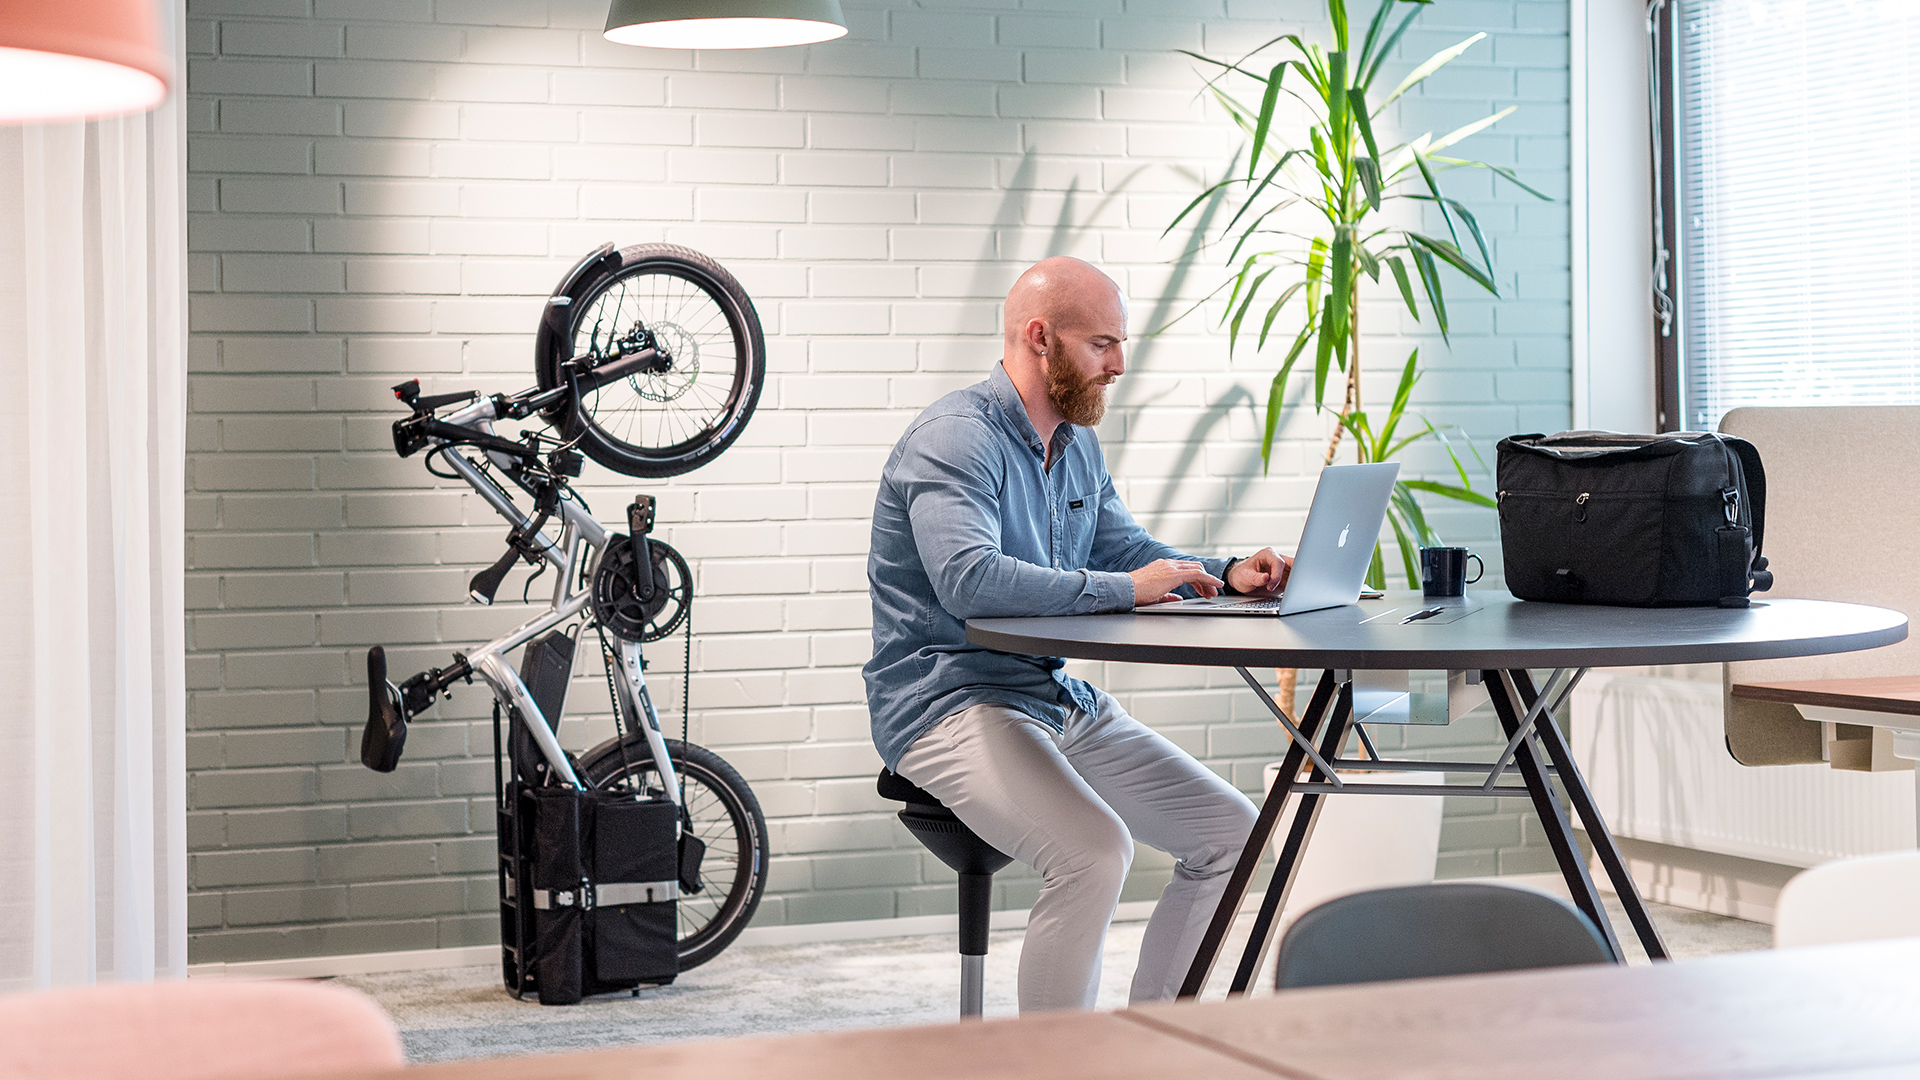 Tern's super-practical new HSD e-bike wants to put your car